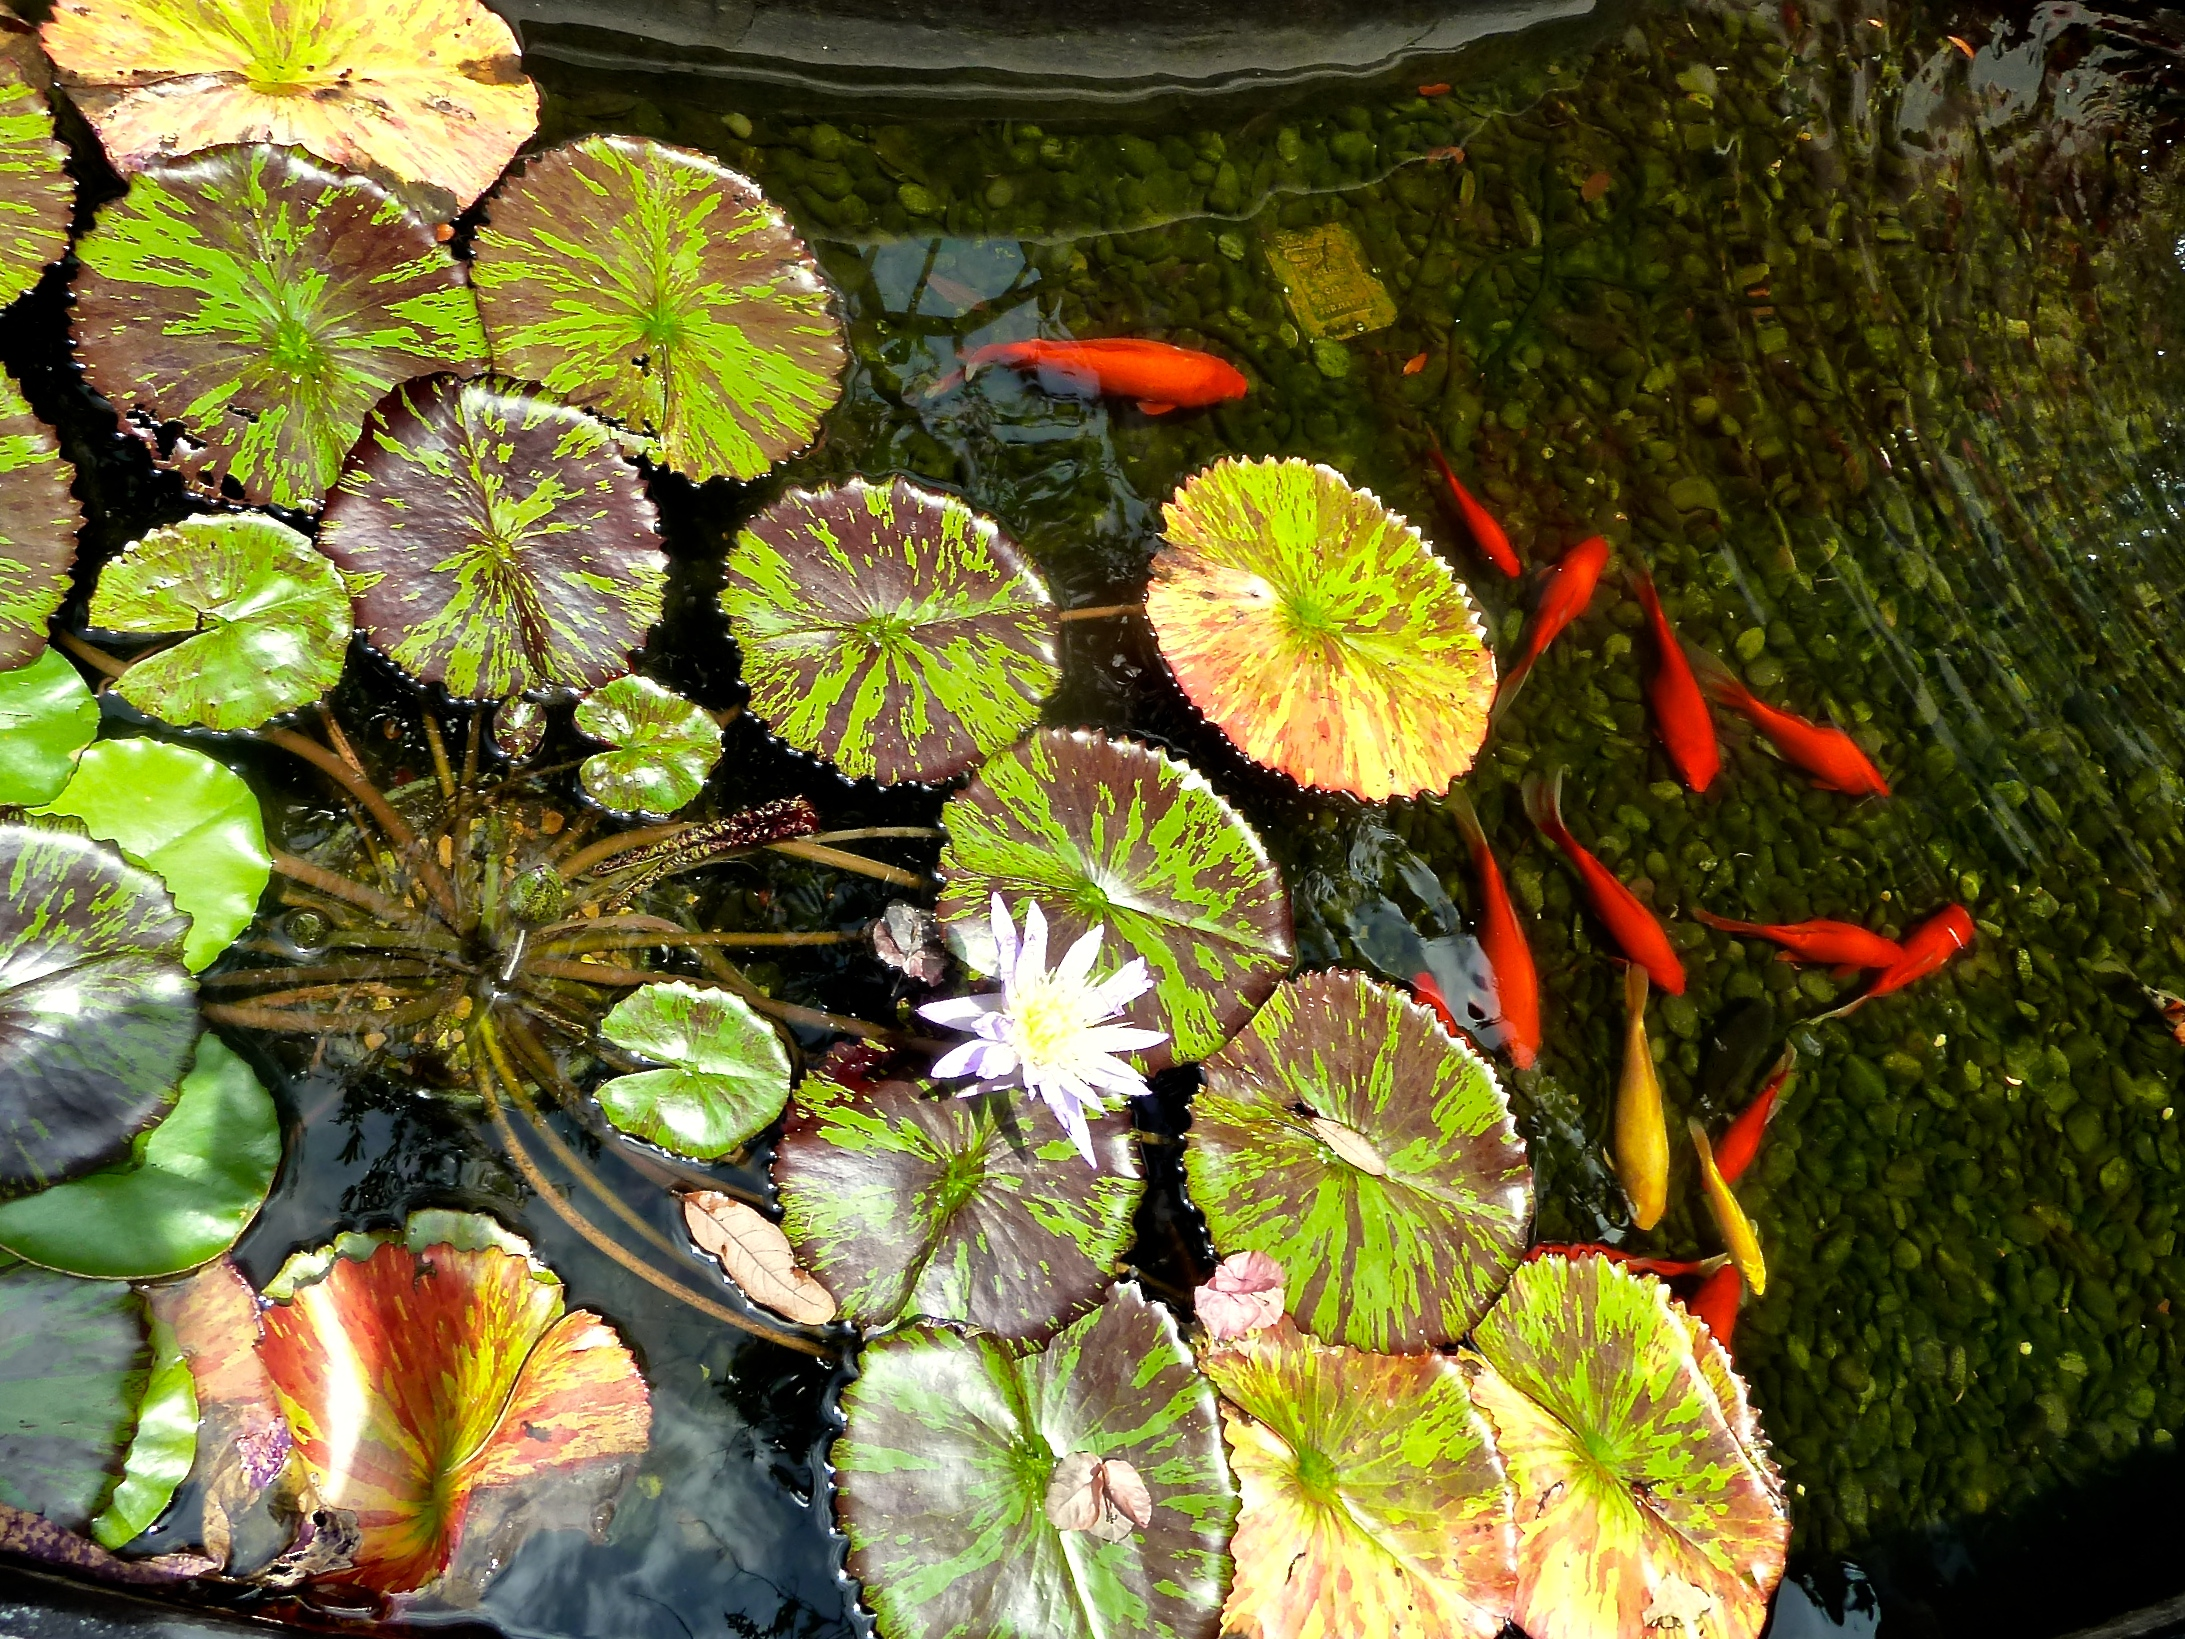 Ready for your Koi close up?